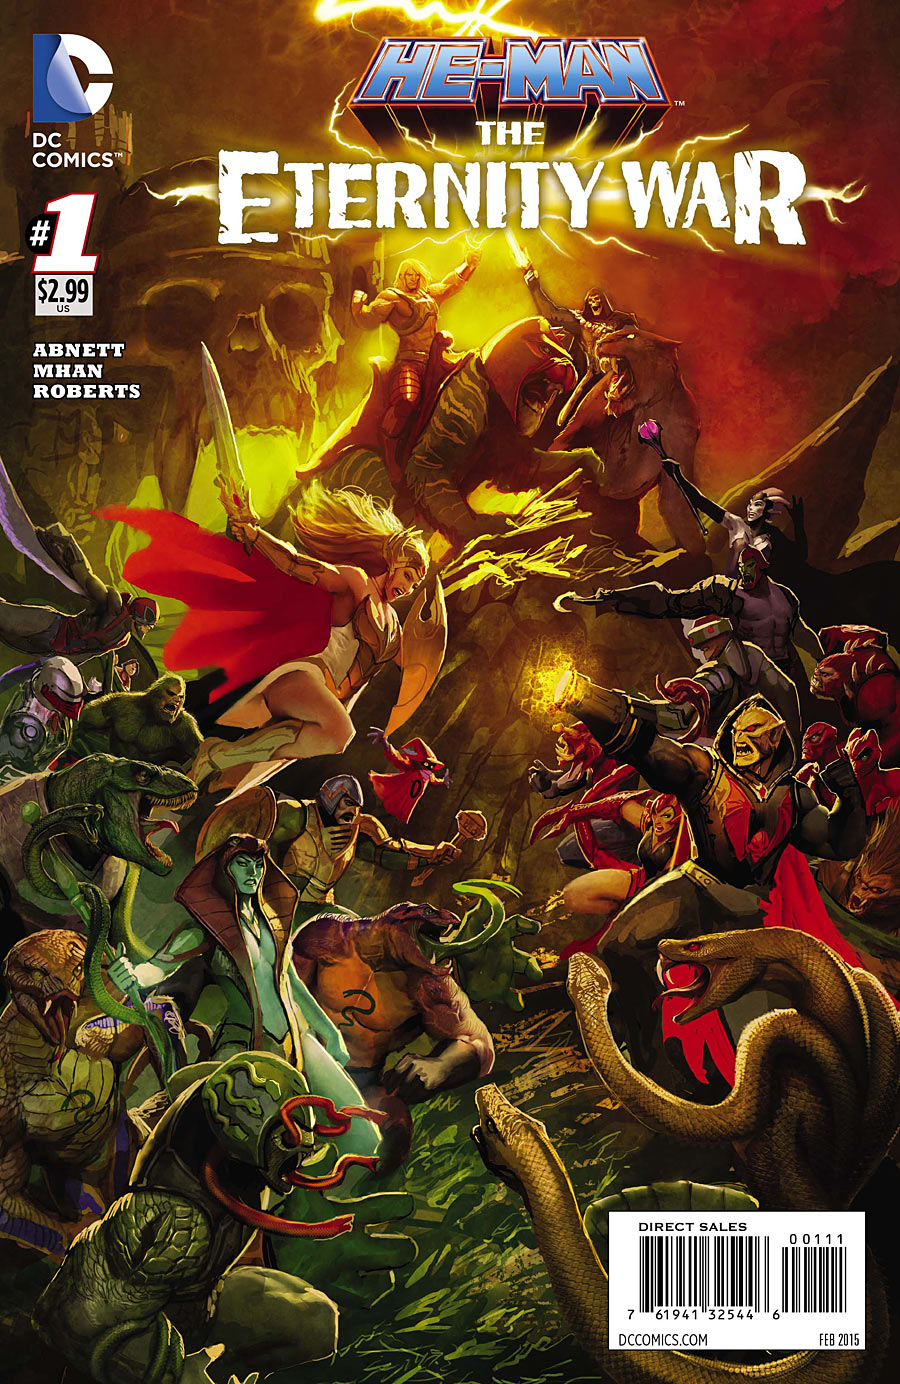 He-Man: The Eternity War Vol 1 1